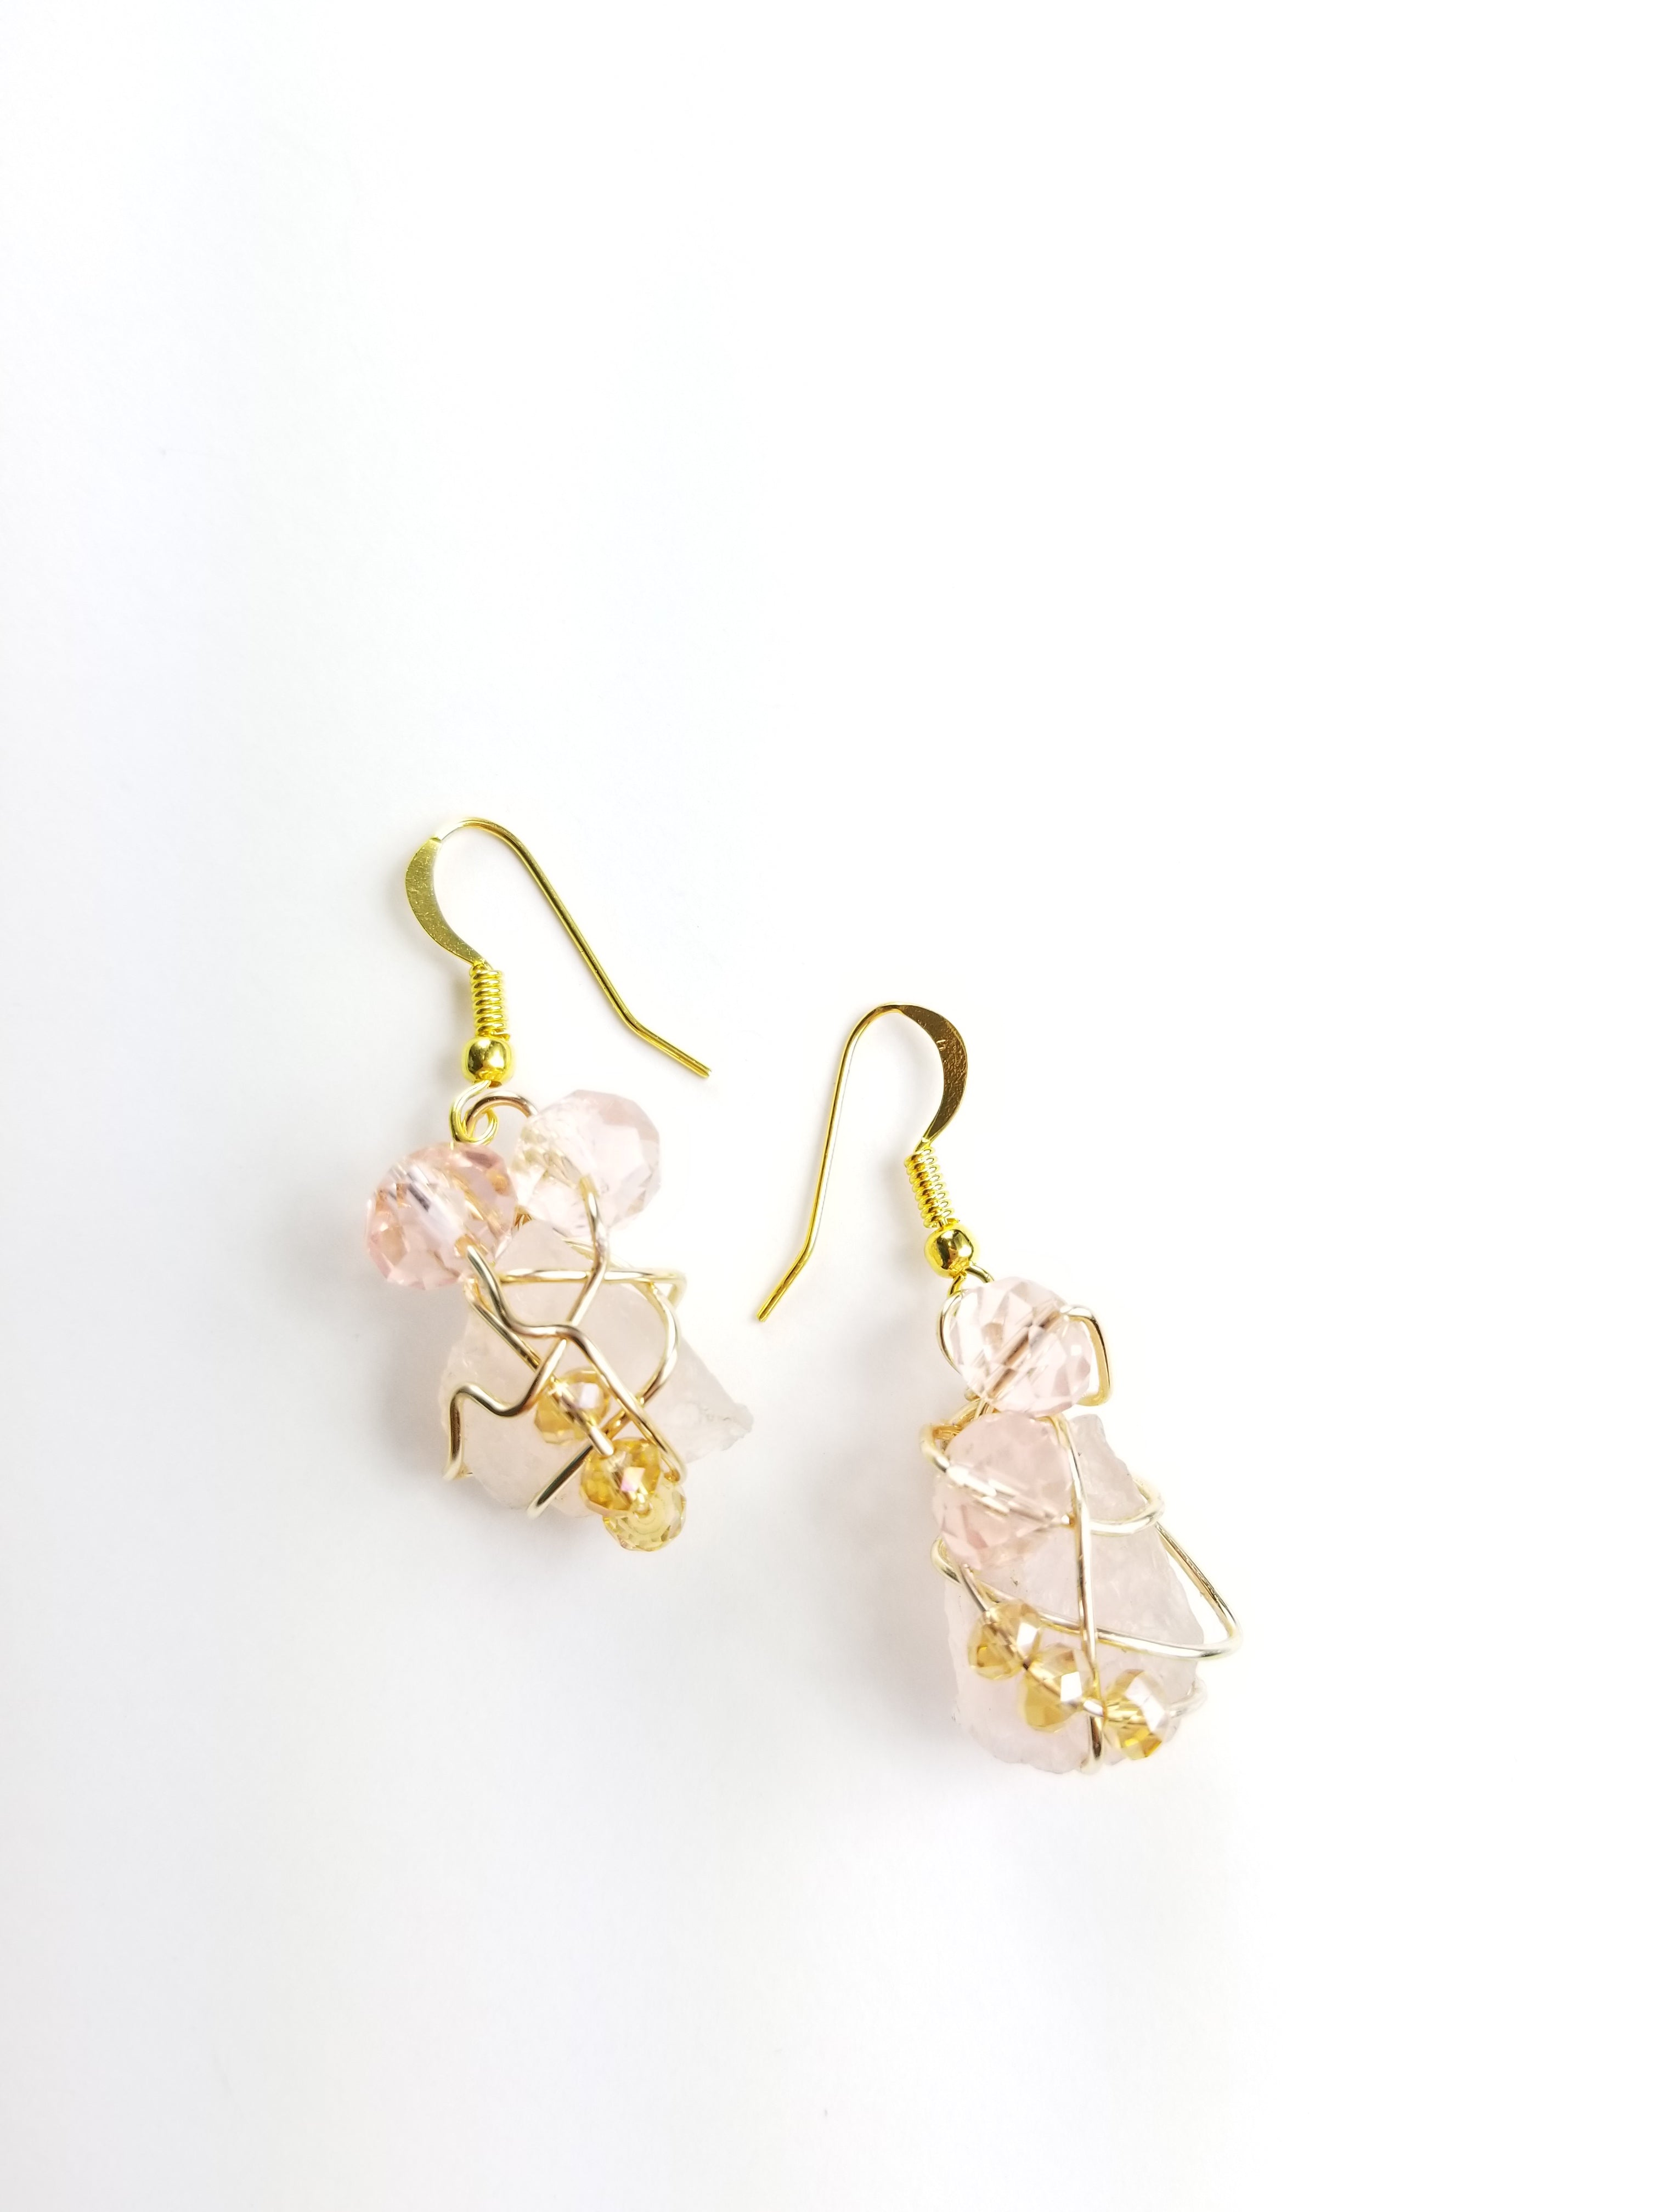 Rose Quartz, drop earrings, one of a kind crystal jewelry